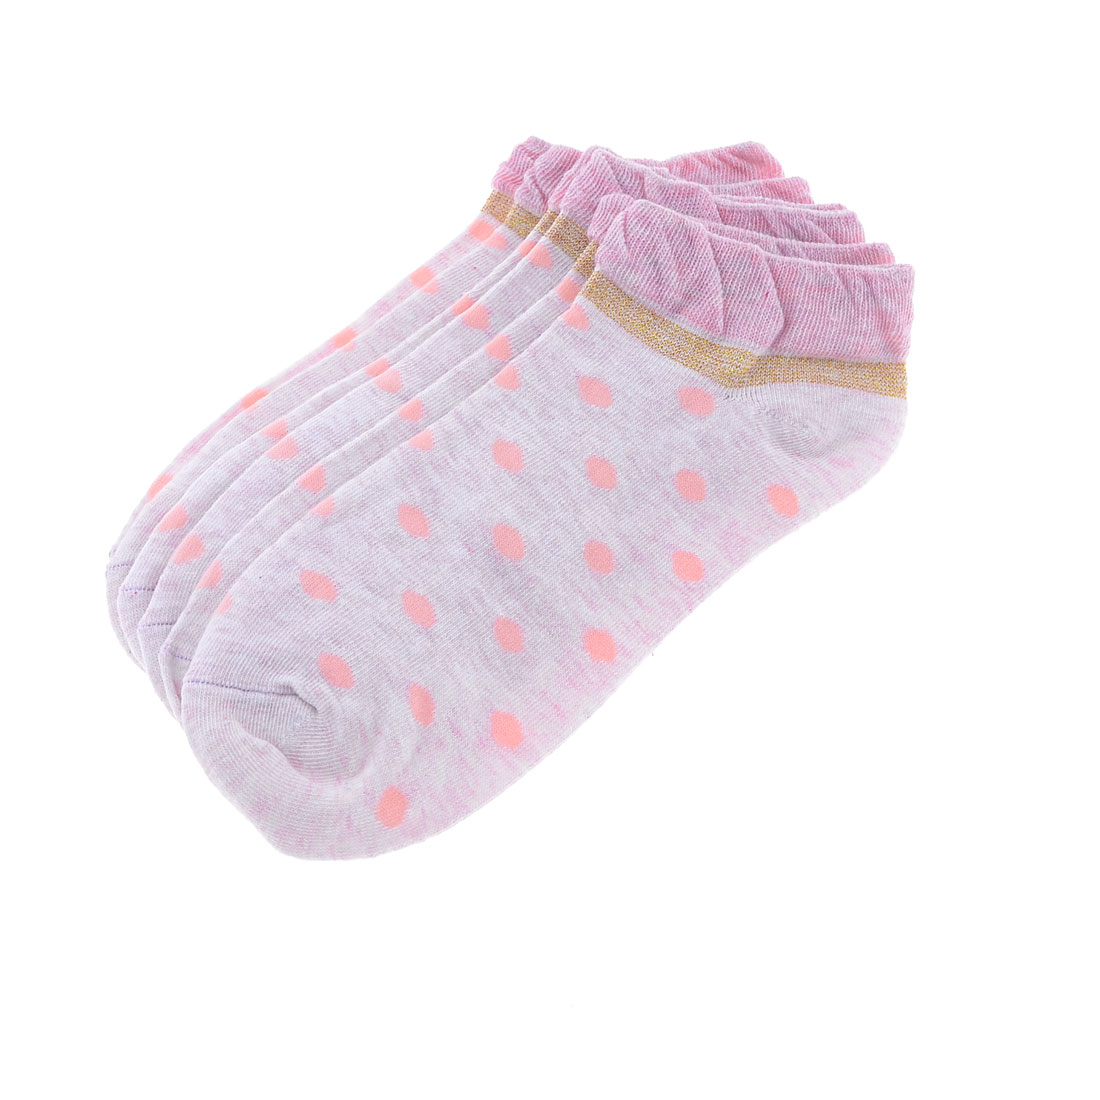 3 Pairs Pale Pink Dotted Pattern Elastic Ankle Socks for Woman